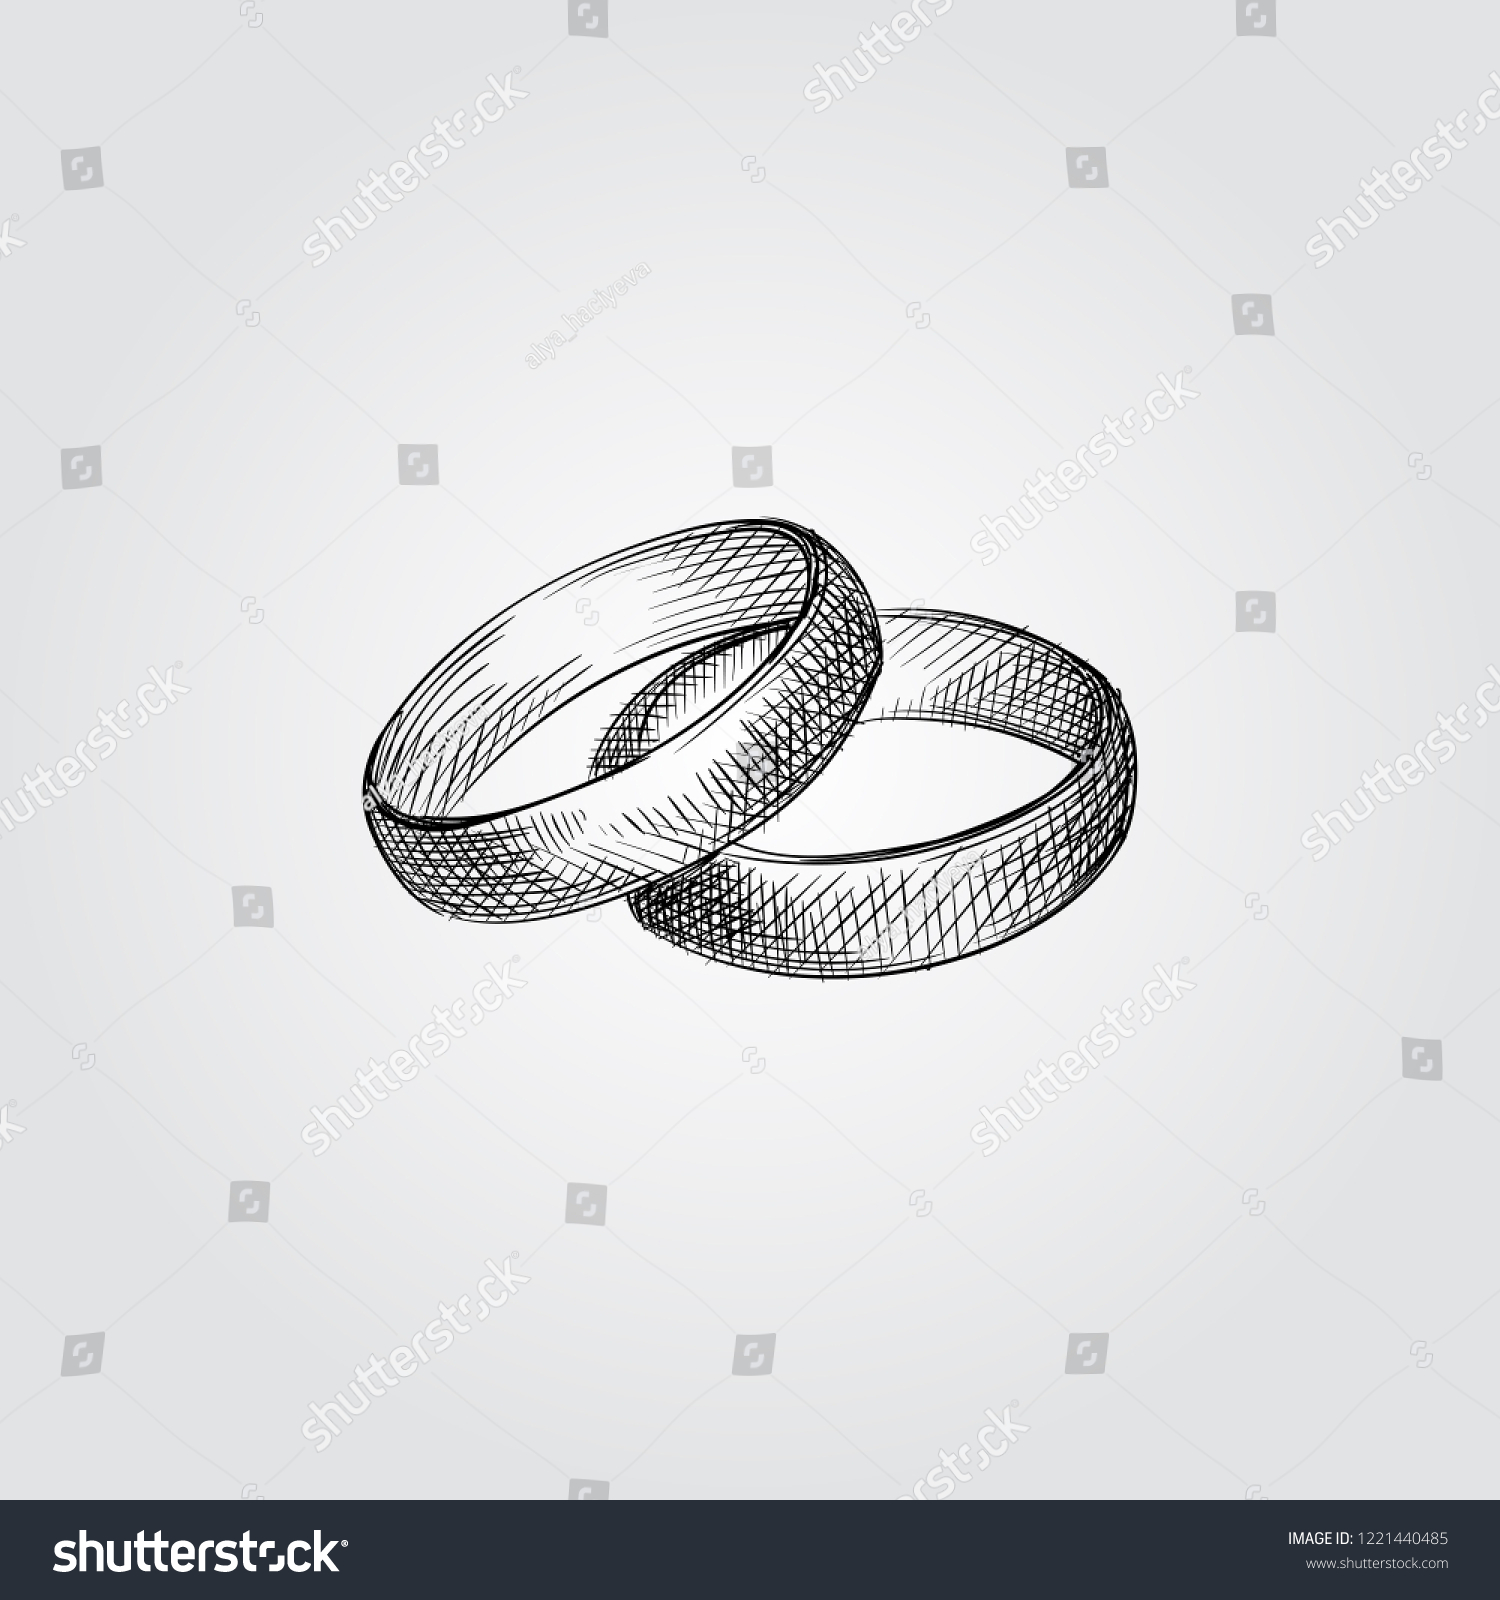 Hand Drawn Wedding Rings Sketch Symbol Isolated On White Background Vector Of Elements In: Drawn Chalkboard Wedding Ring At Reisefeber.org